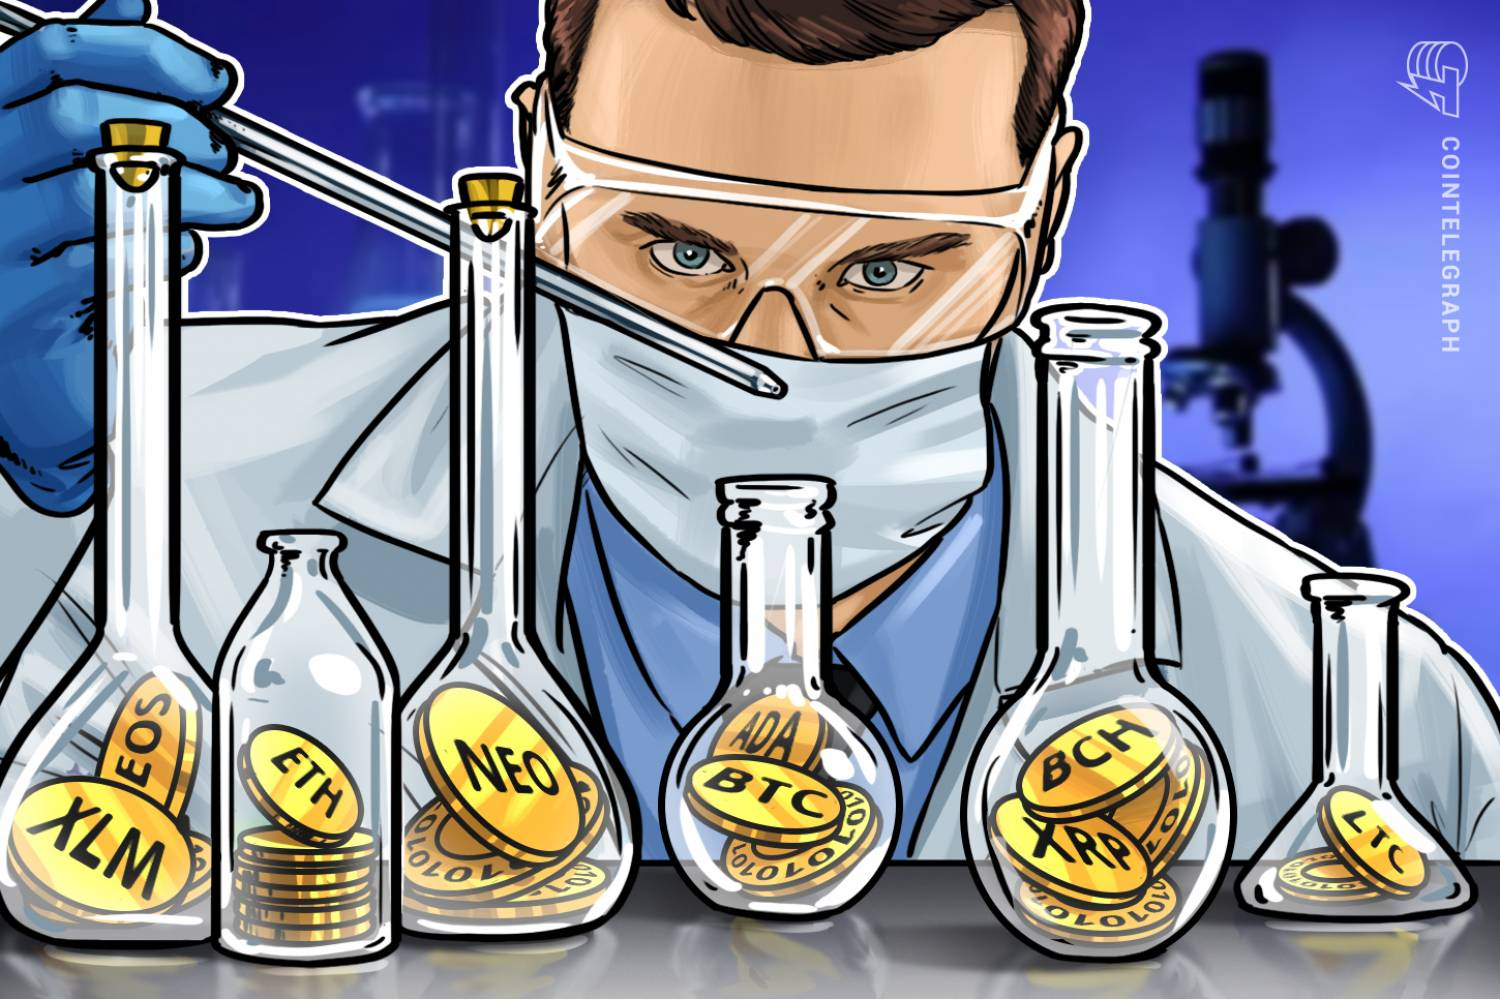 A bottle of ripple clipart picture free download Altcoins With Lightning Network Support picture free download